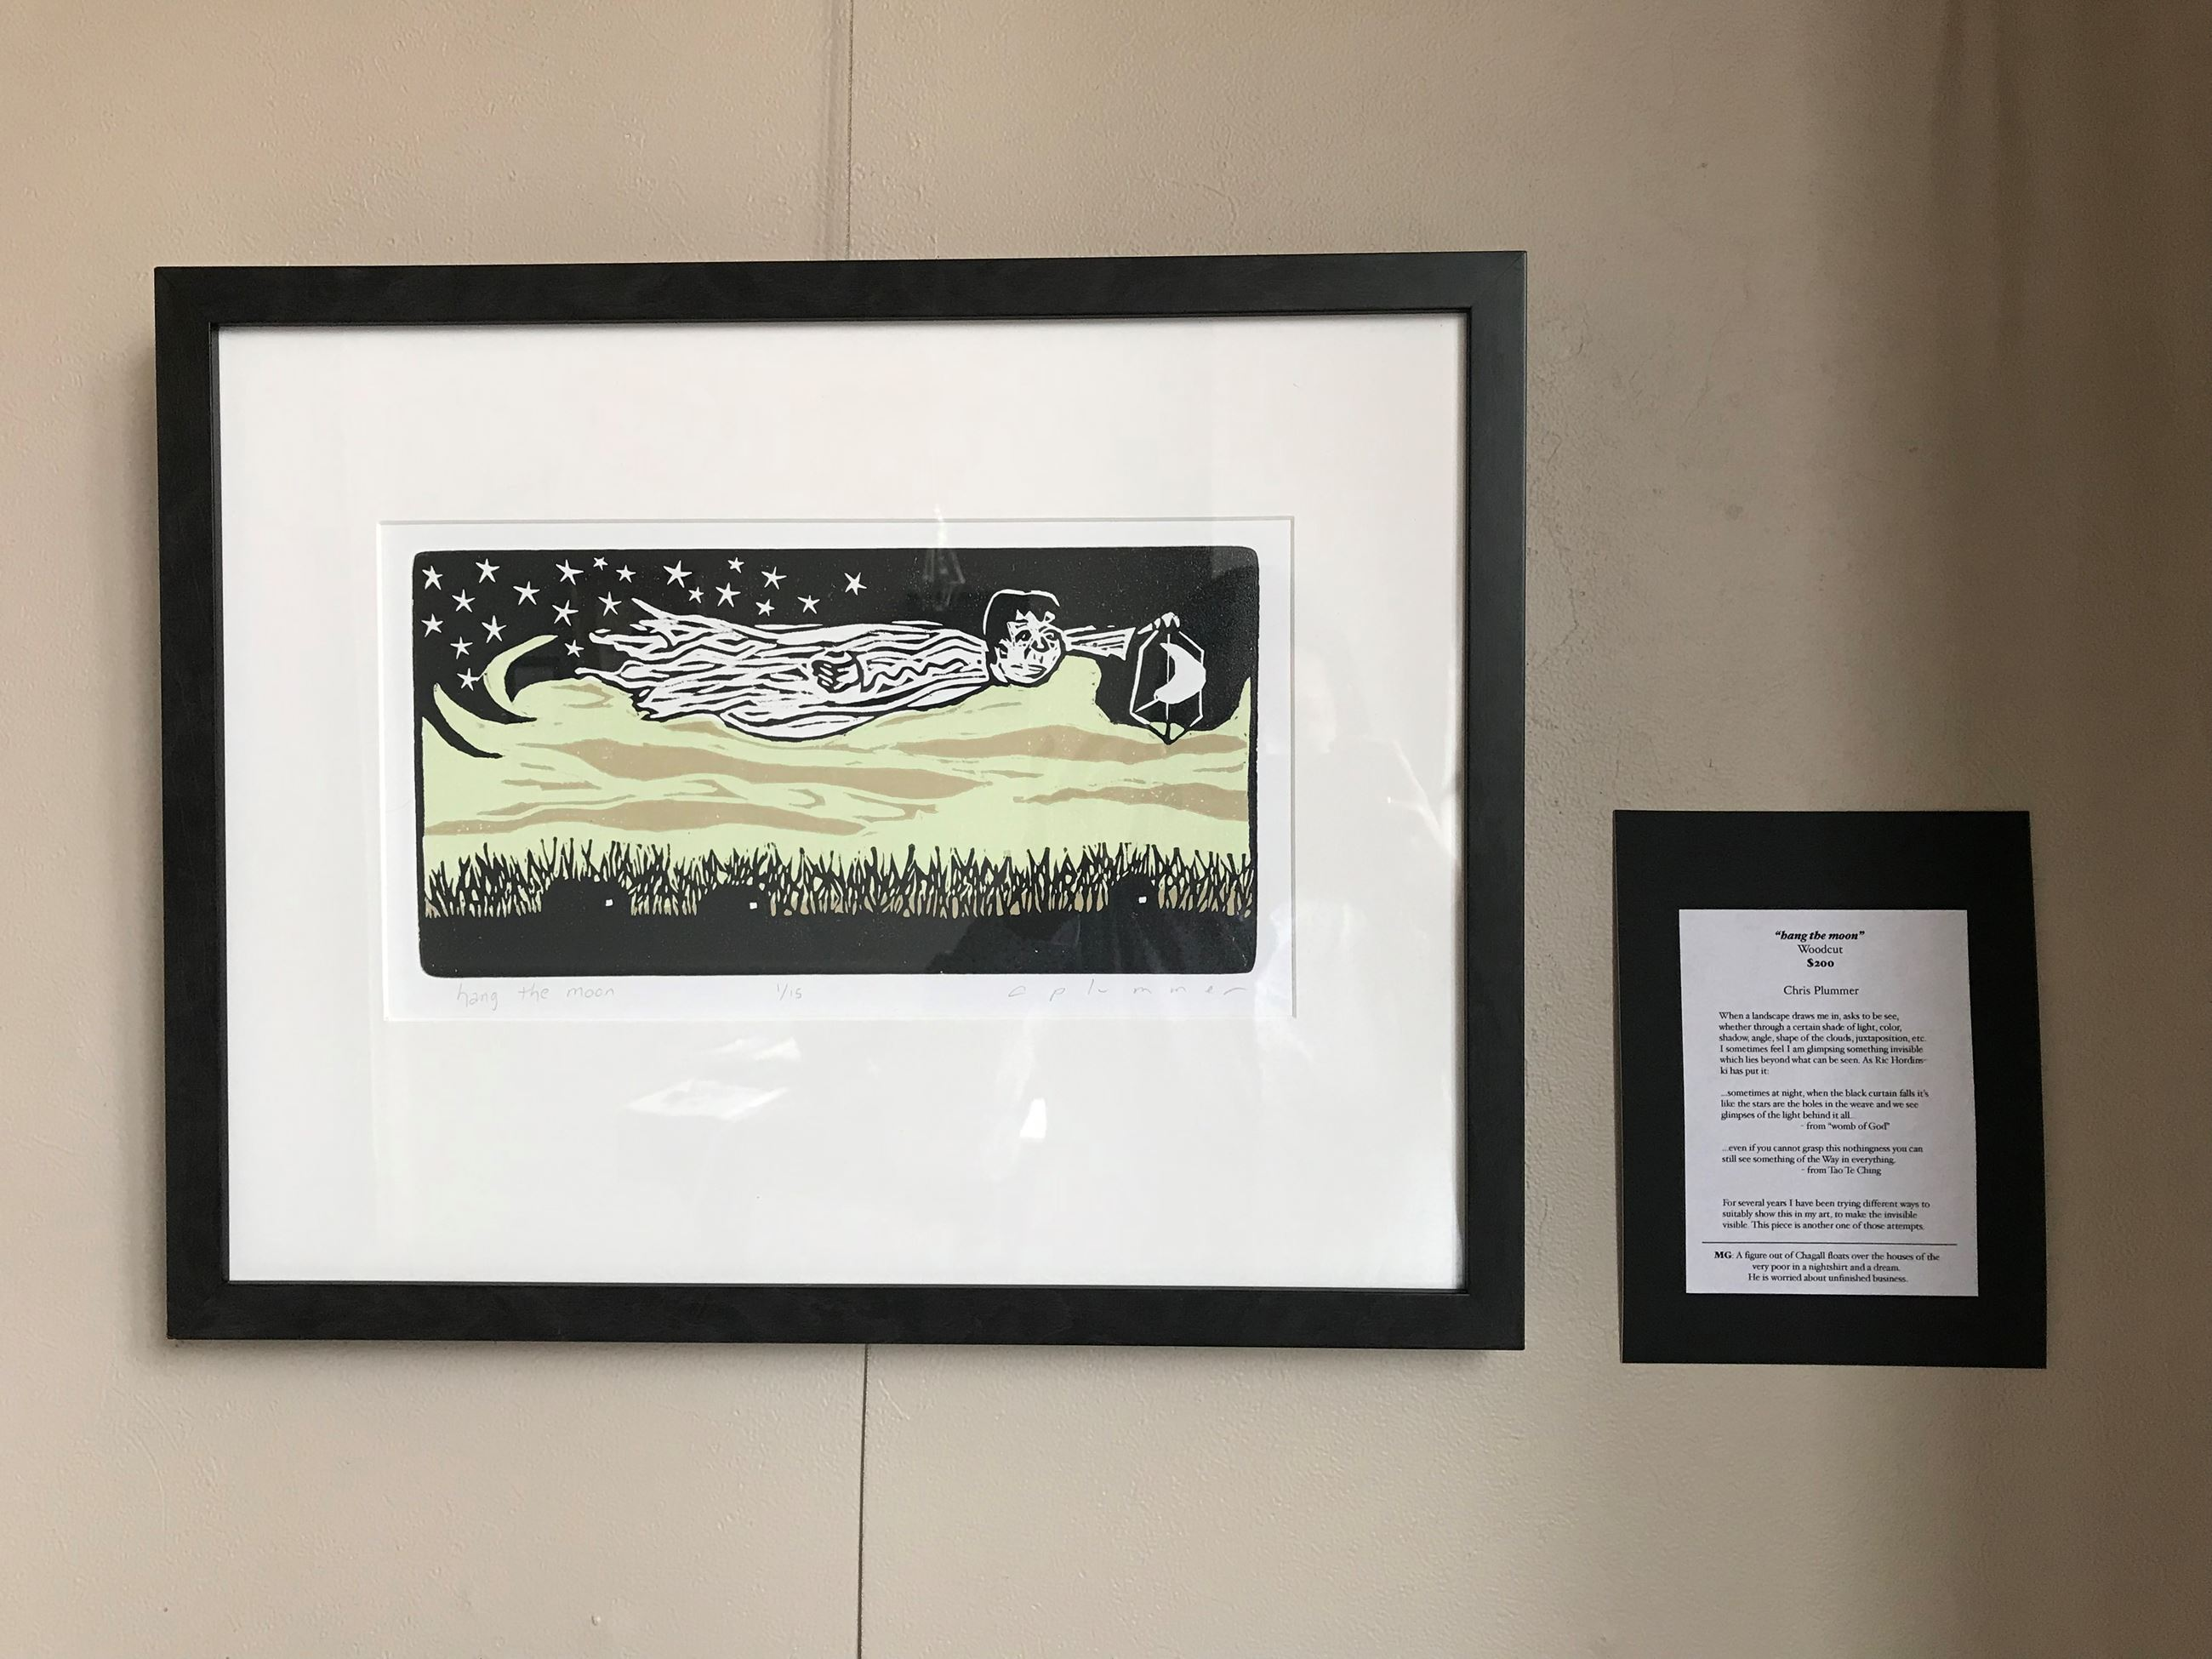 hang the moon by Chris Plummer (woodcut) (002)